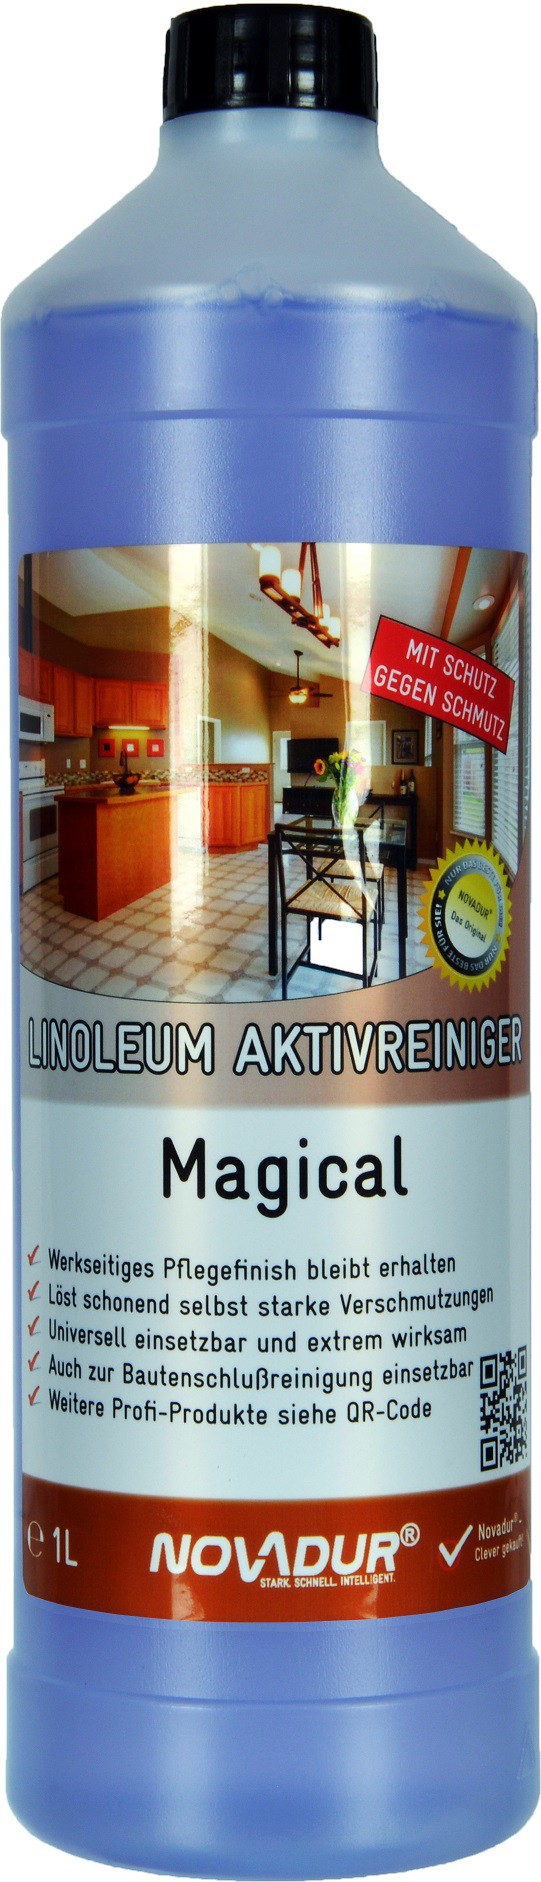 novadur linoleum aktivreiniger magical 1000 ml flasche online kaufen. Black Bedroom Furniture Sets. Home Design Ideas